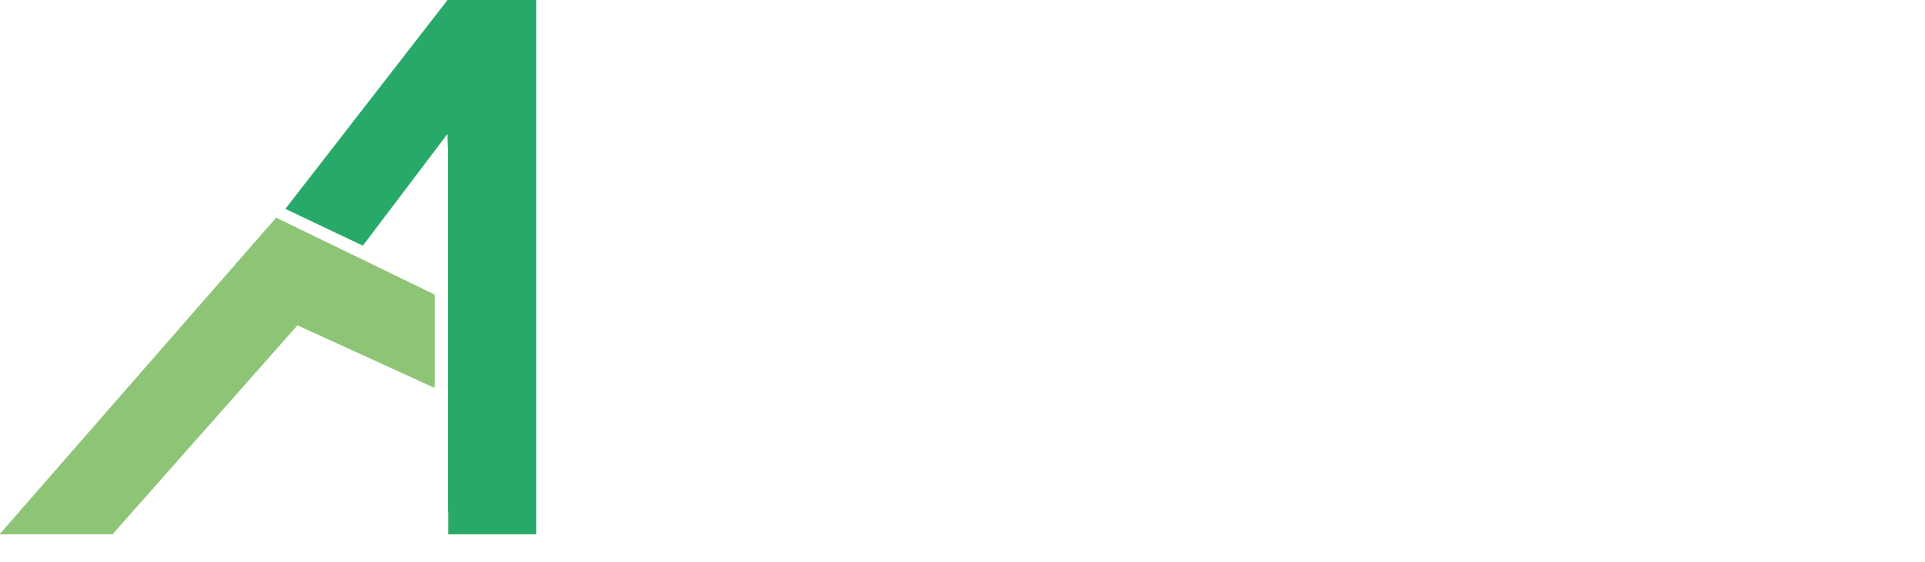 our latest career resources all1kl all1kl asia career management